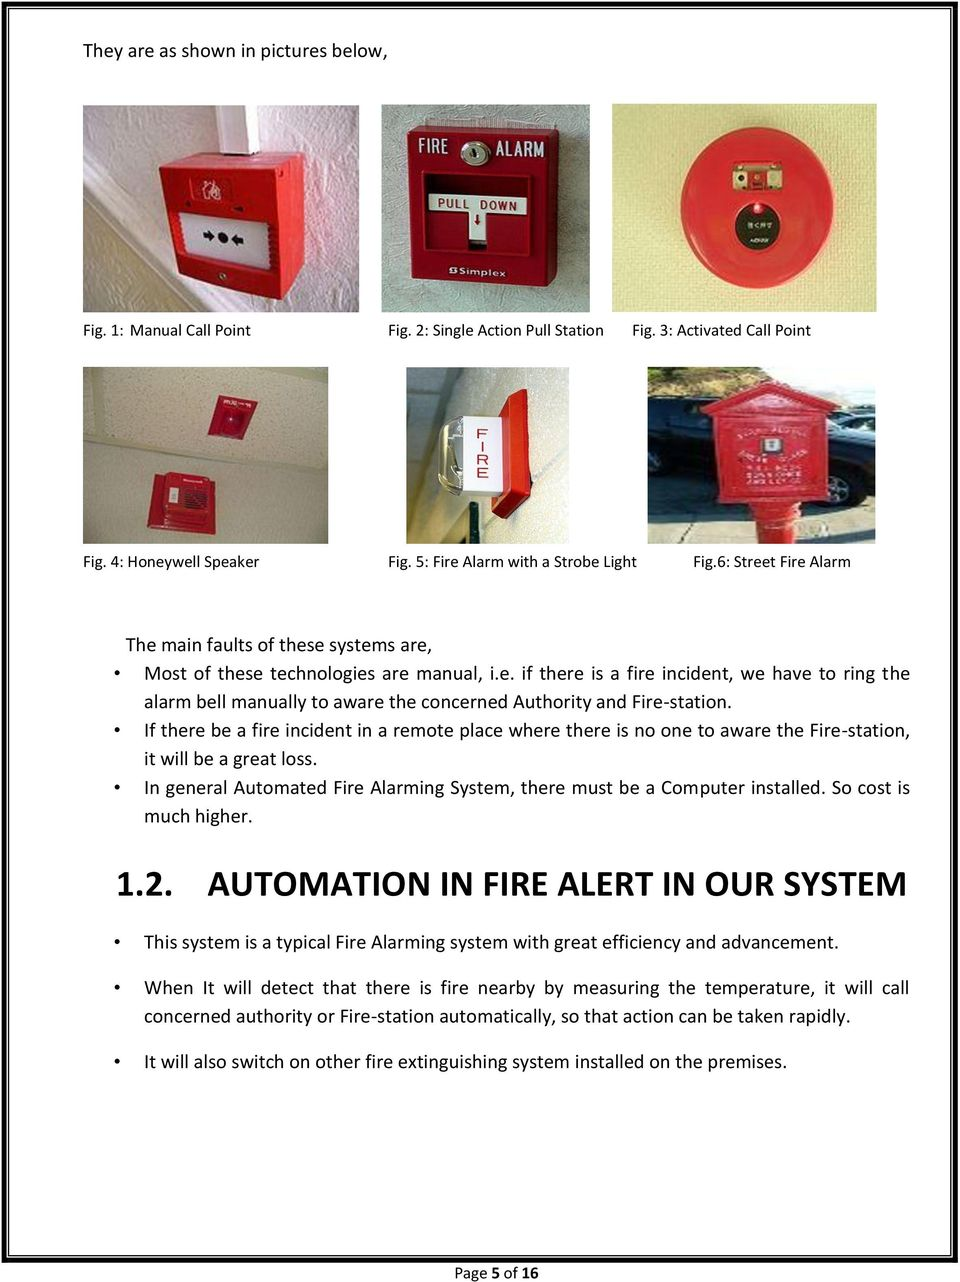 Advanced Fire Alarming System Through Mobile Phone Pdf Automatic Railway Gate Control With High Speed Alerting If There Be A Incident In Remote Place Where Is No One To